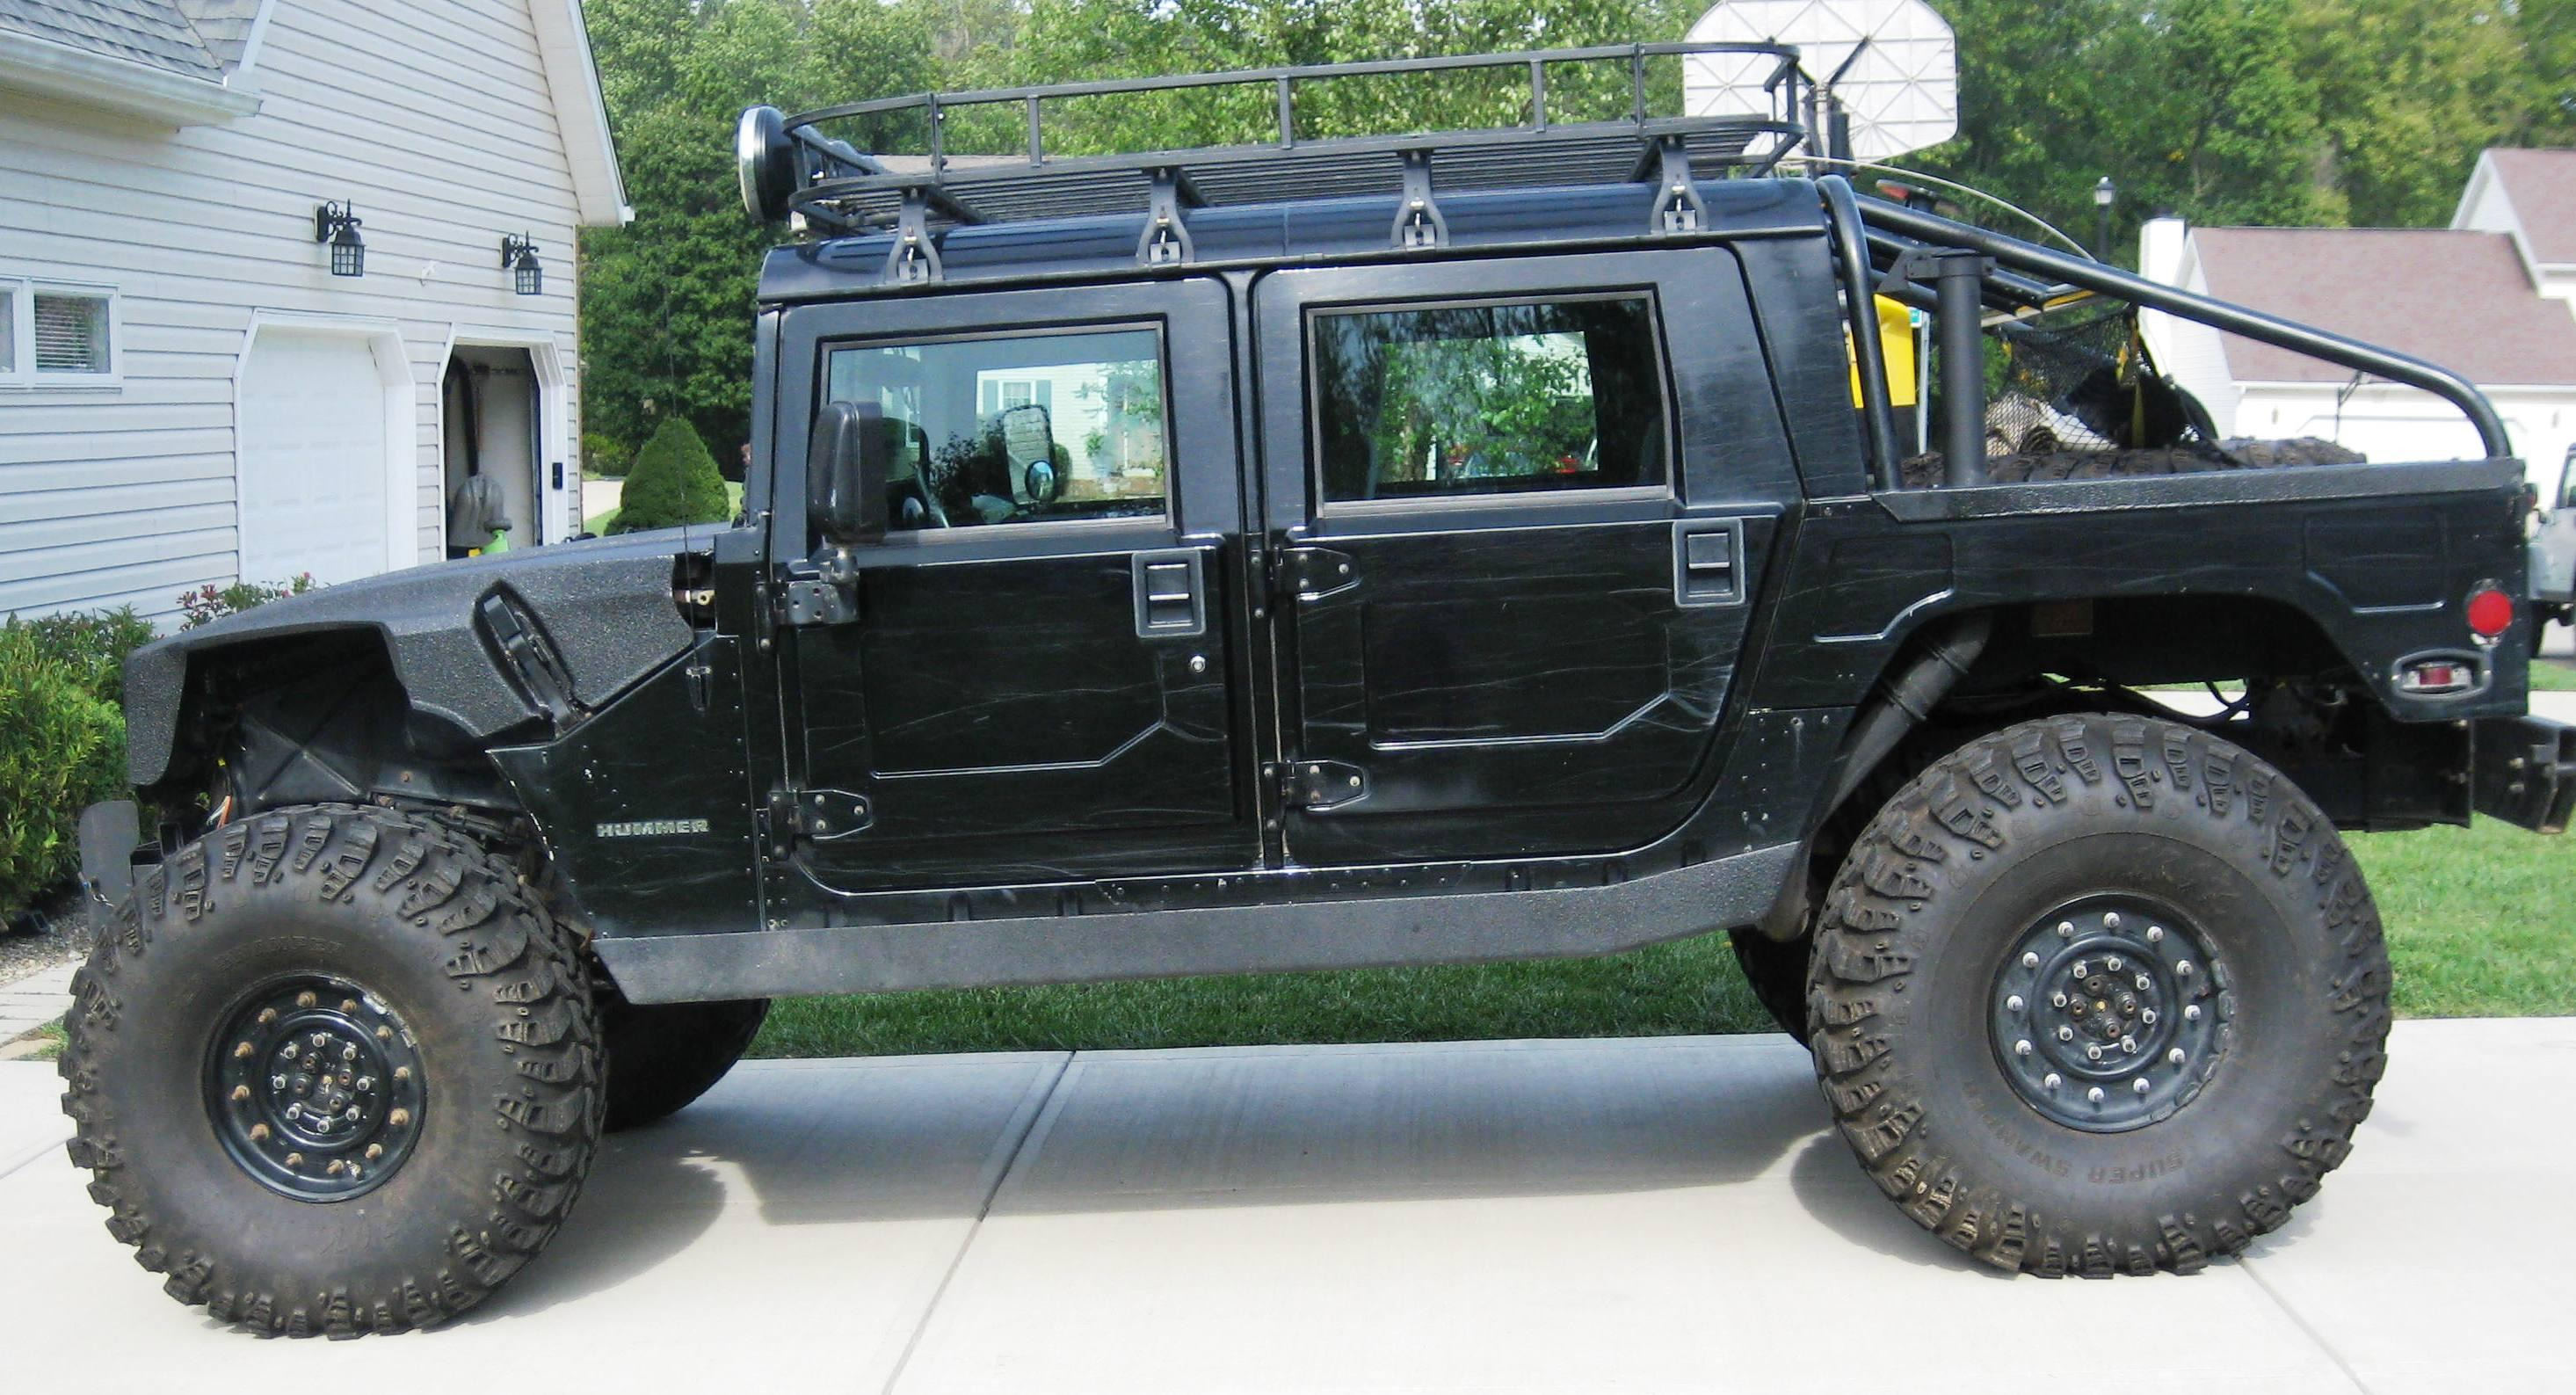 Image detail for Hummer h1 lifted